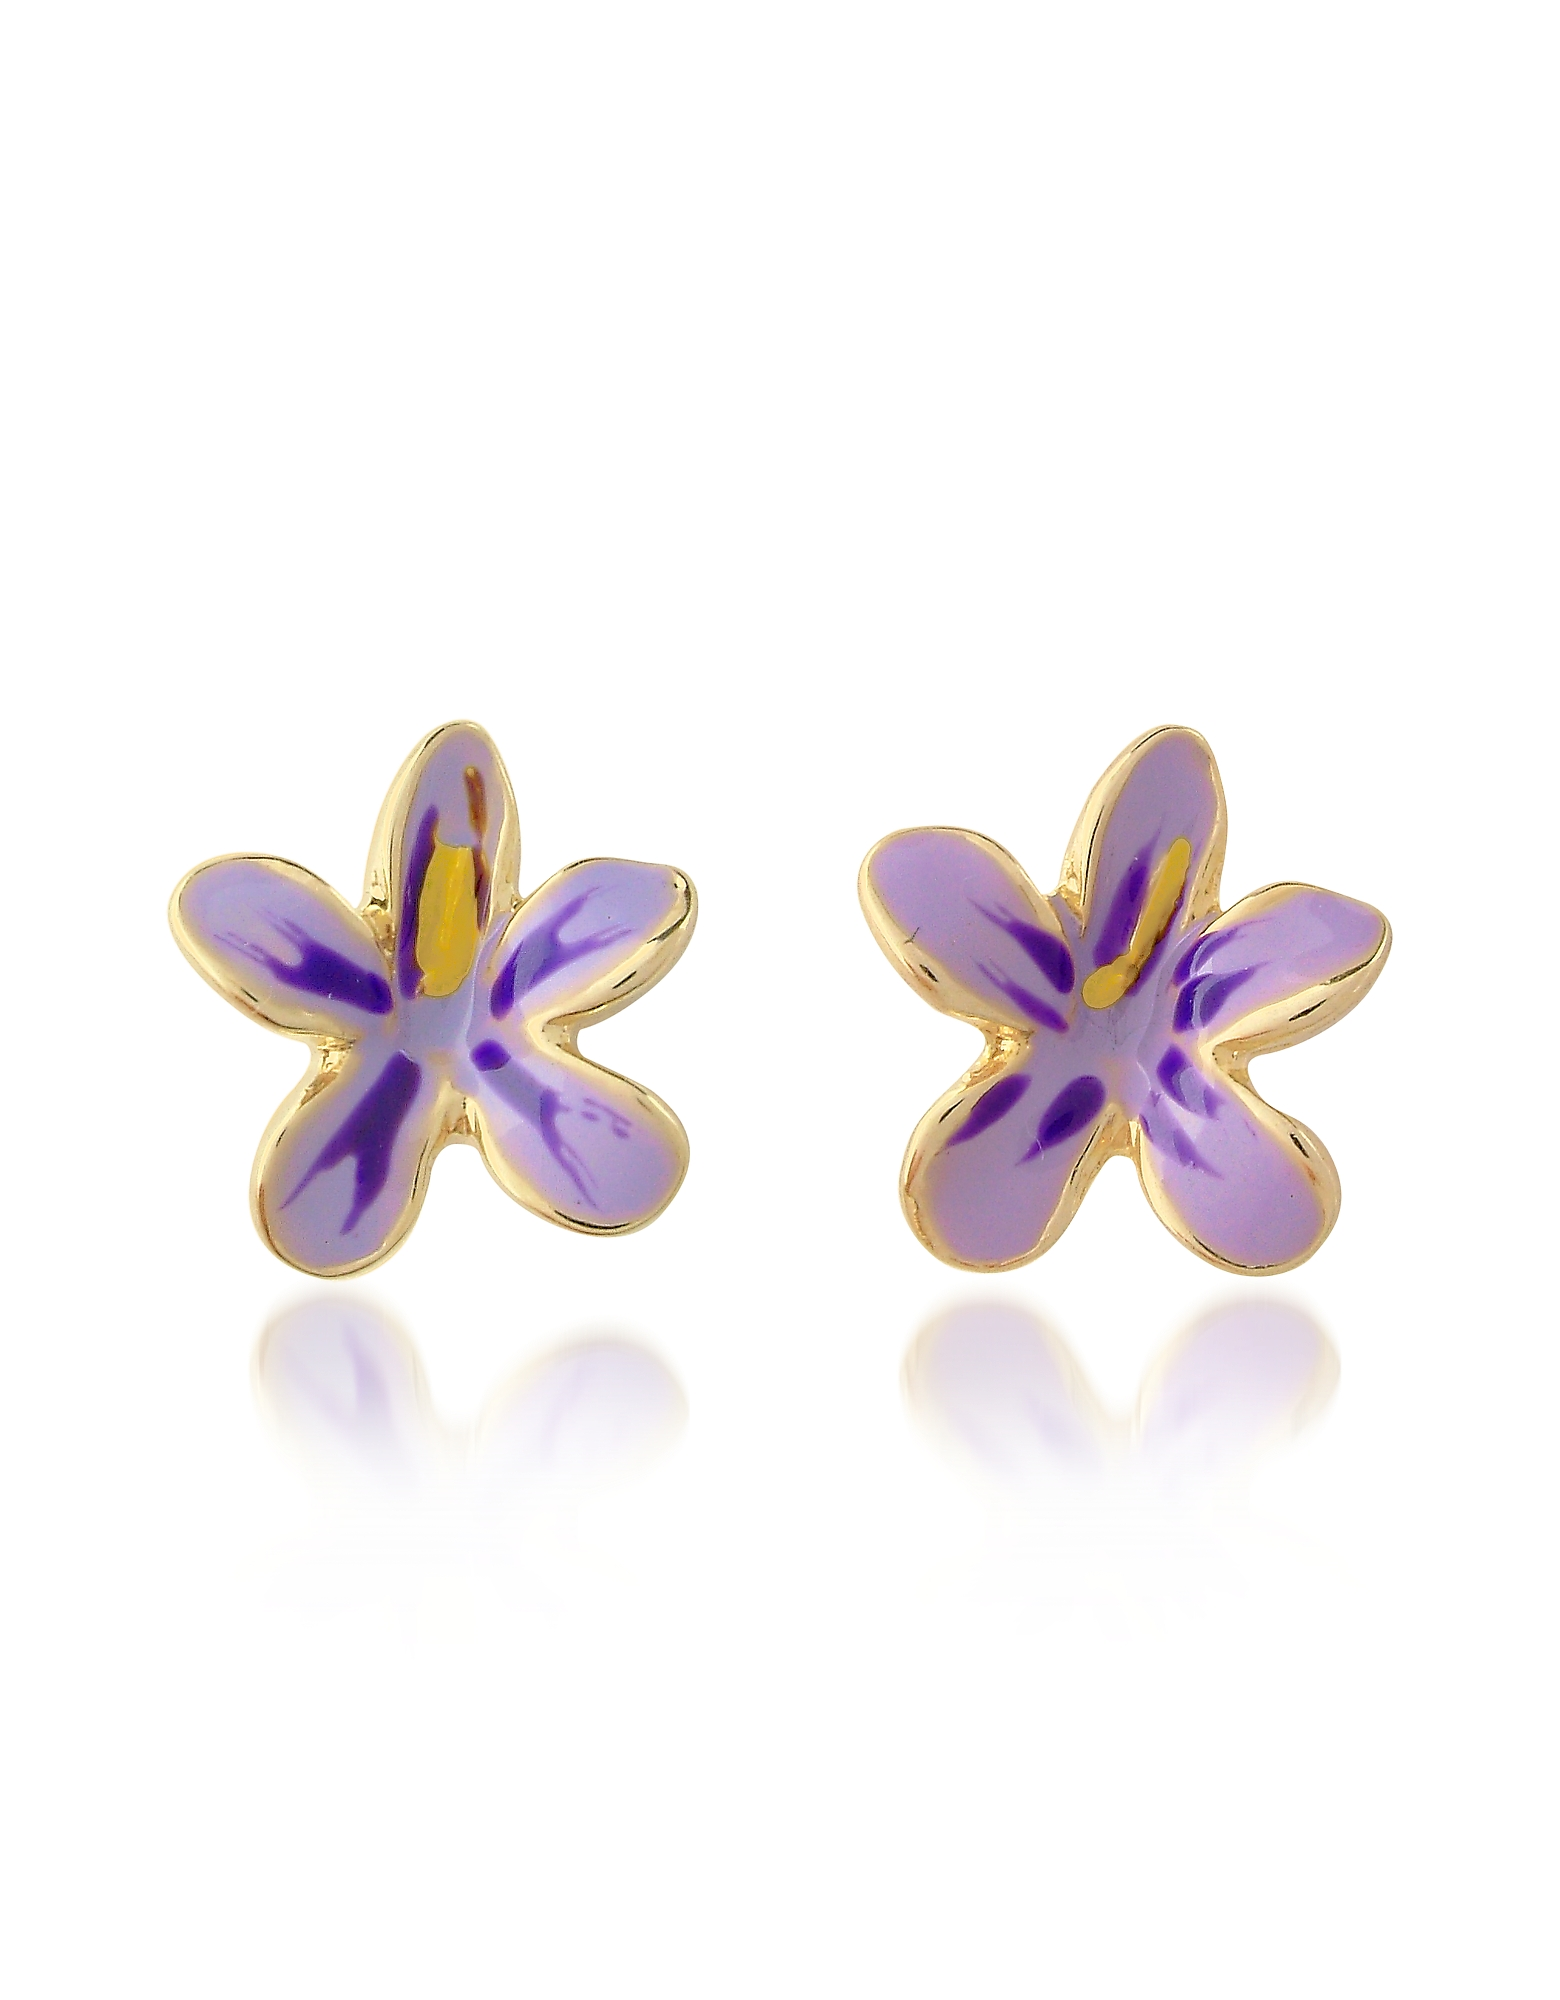 AZ Collection Earrings, Garden Line - Purple Enamel Flower Earrings